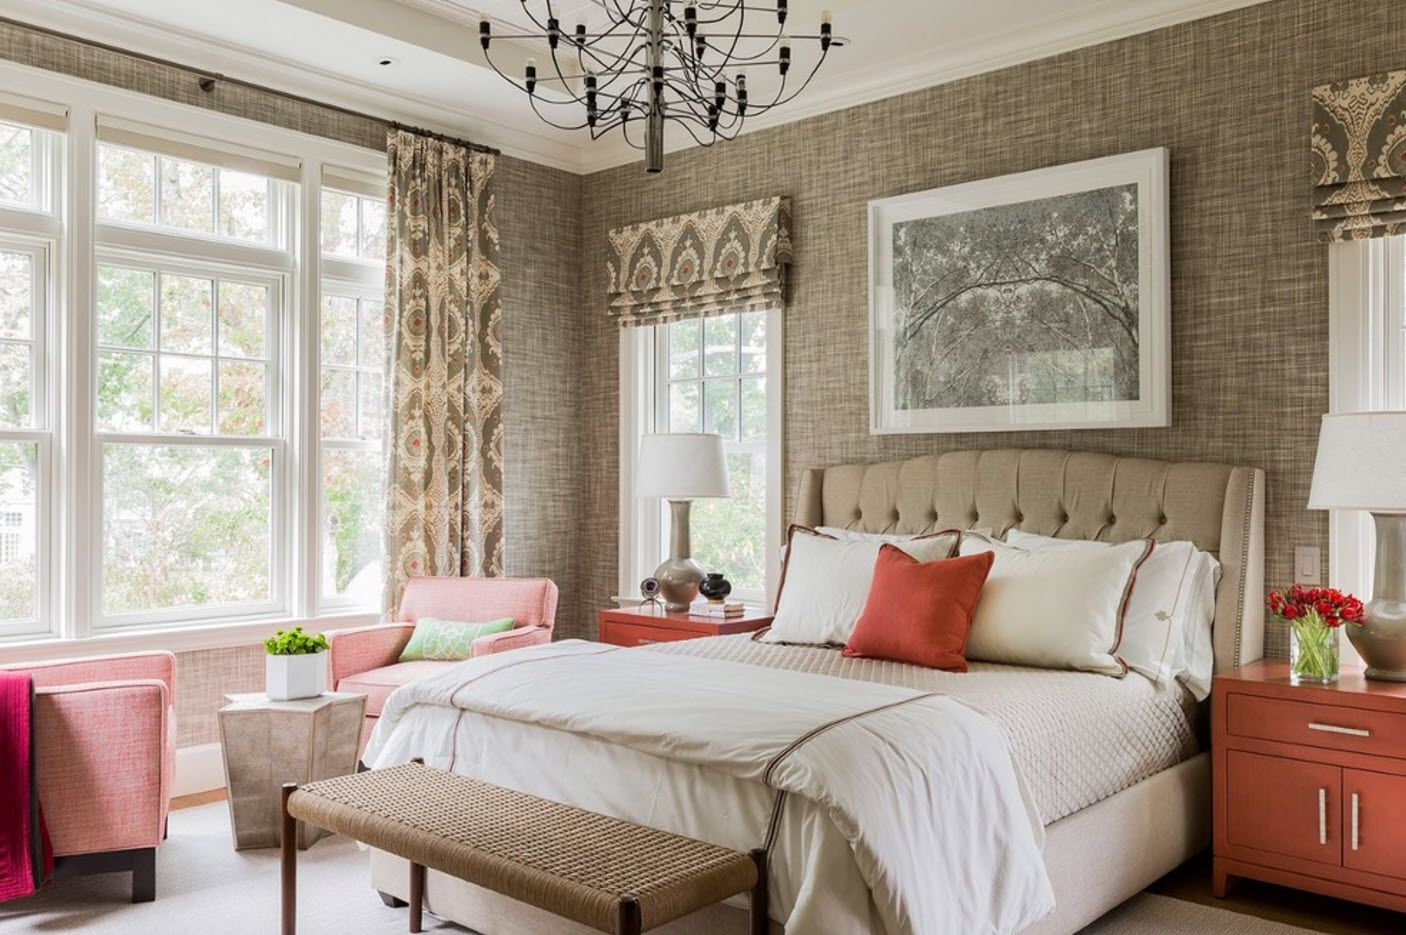 Classic bedroom decoration with quilted creamy soft headboard